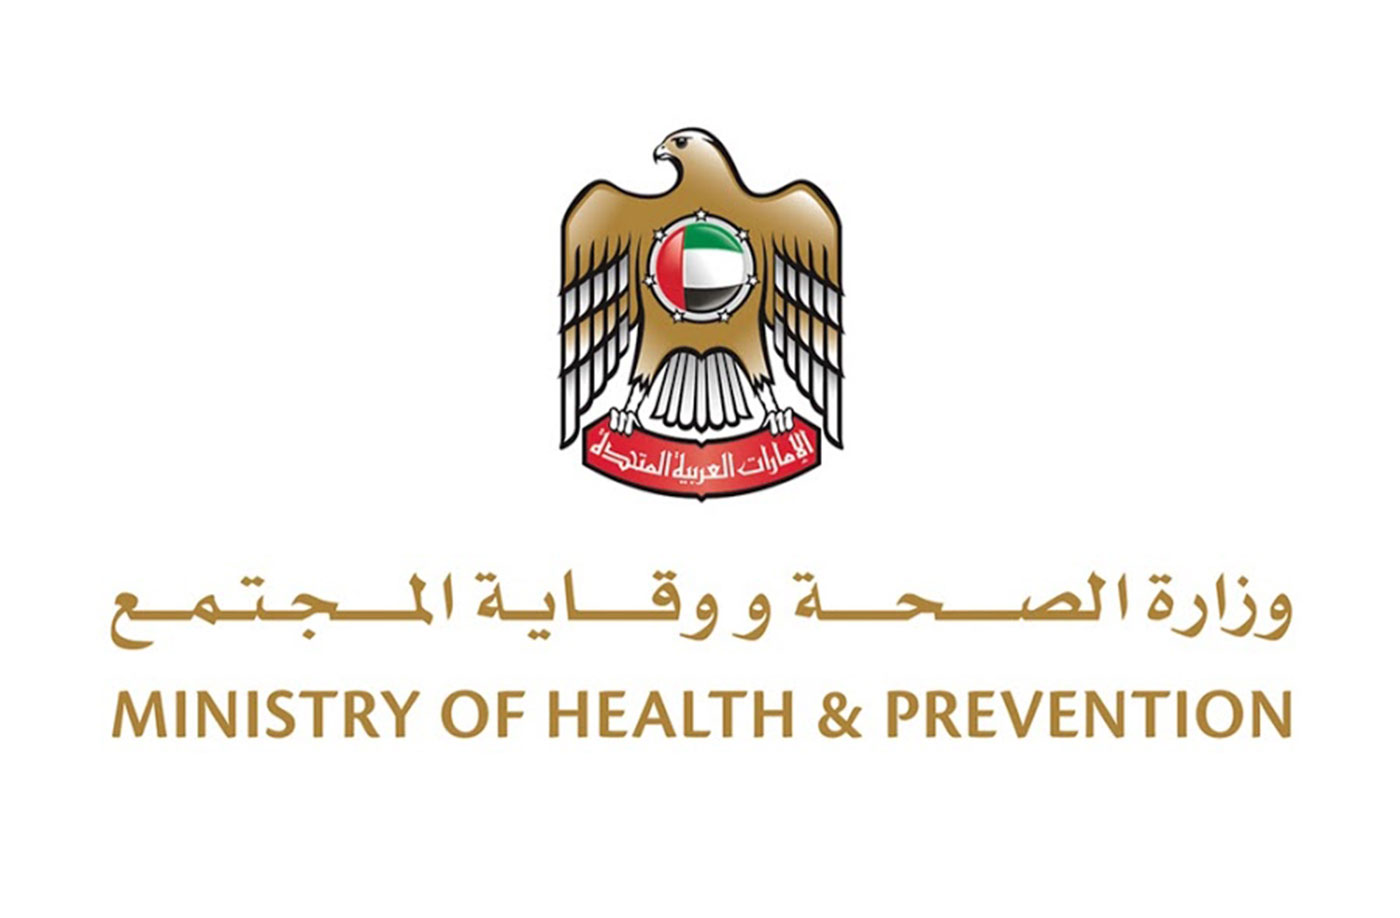 UAE announces 3,123 new COVID-19 cases, 4,892 recoveries, 13 deaths in last 24 hours